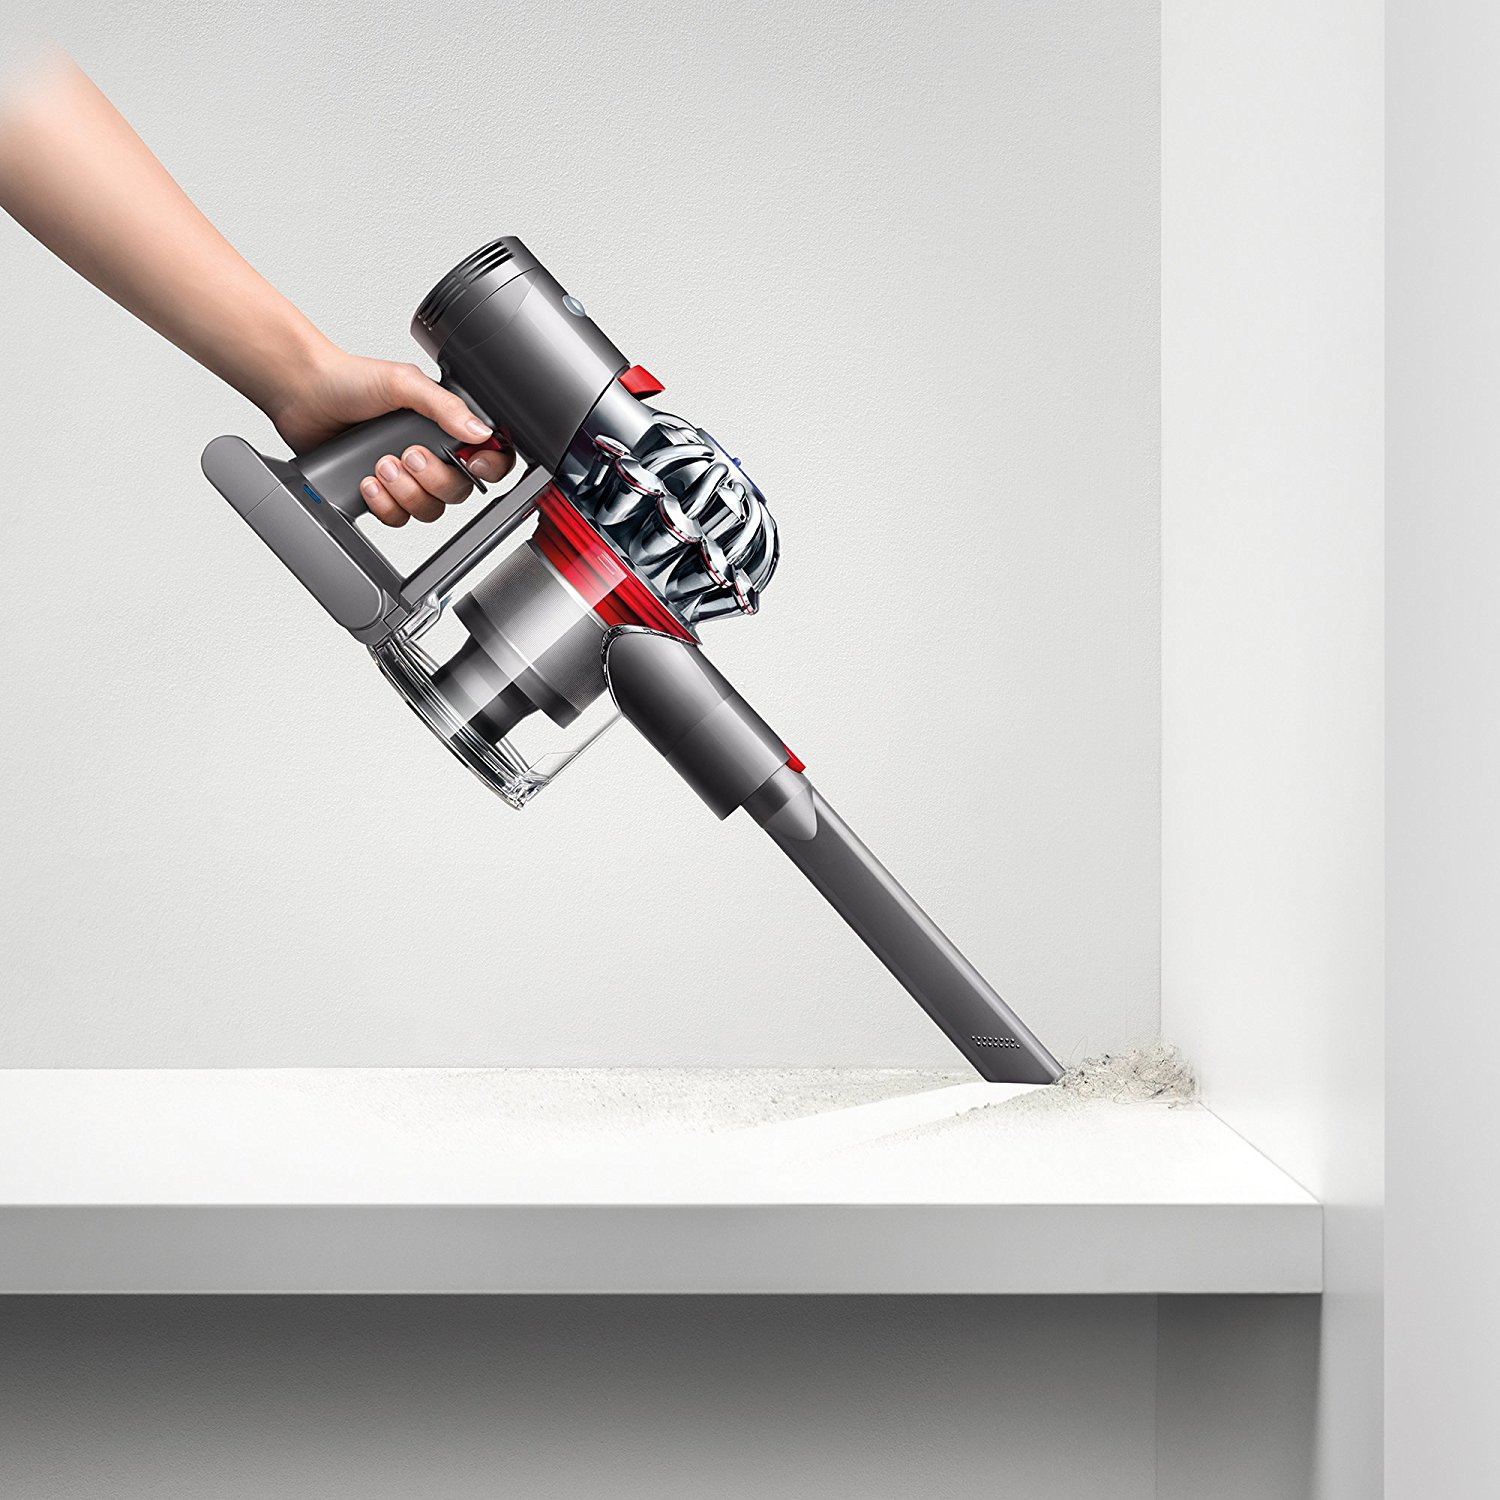 Dyson V7 Trigger Cord-Free Handheld Vacuum Crevice Tool